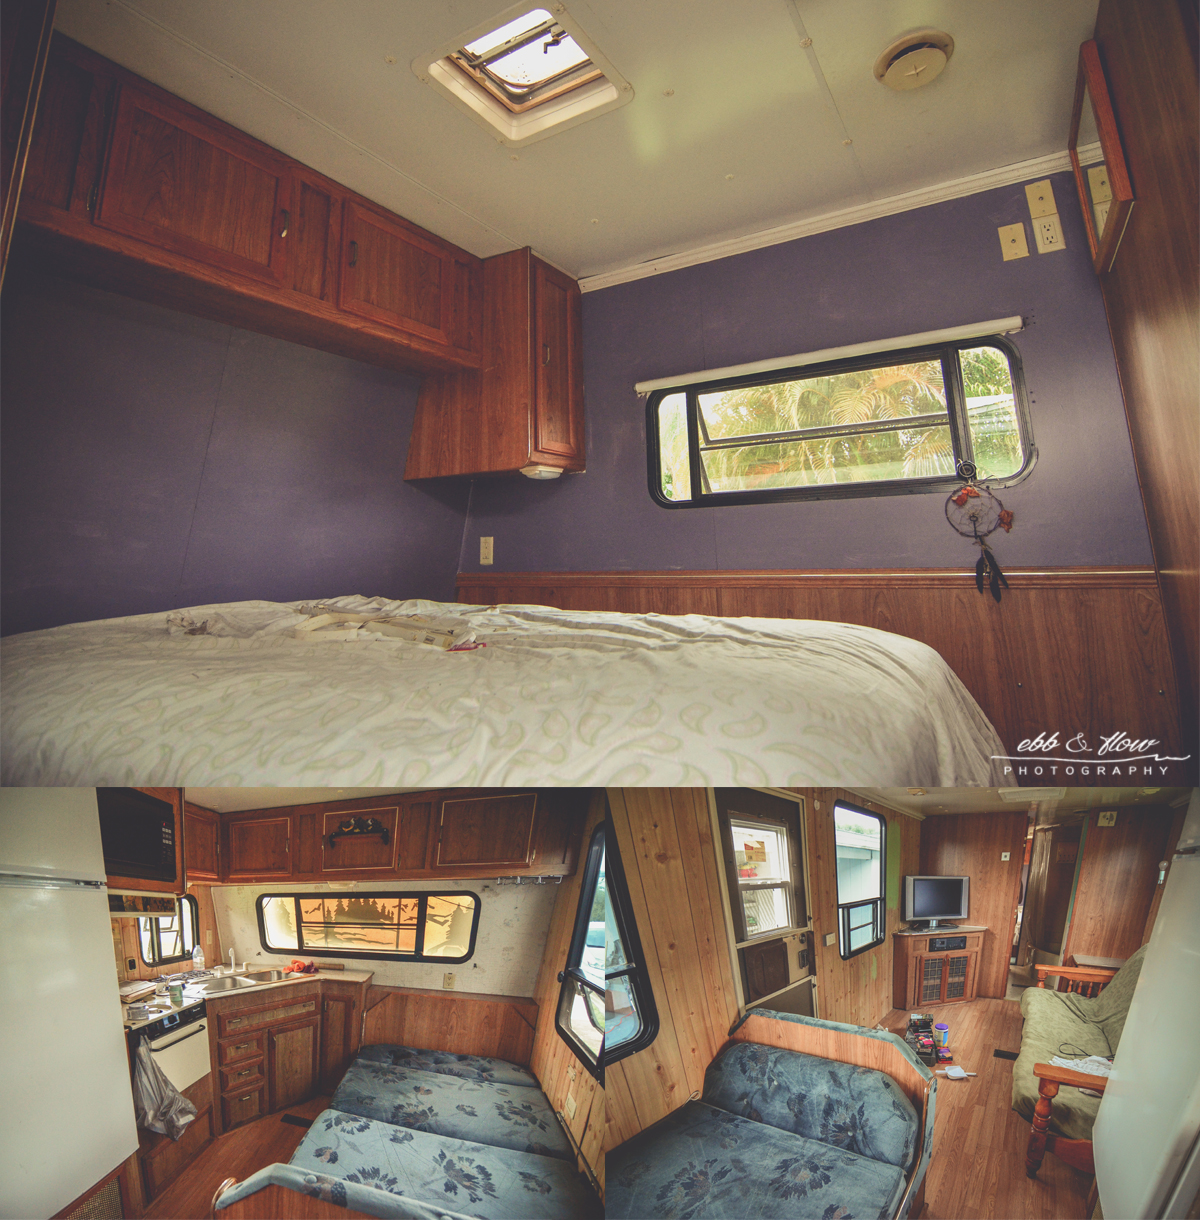 big enough to do yoga in the front room, this camper is spacious and will no doubt look amazing once she has added her touches